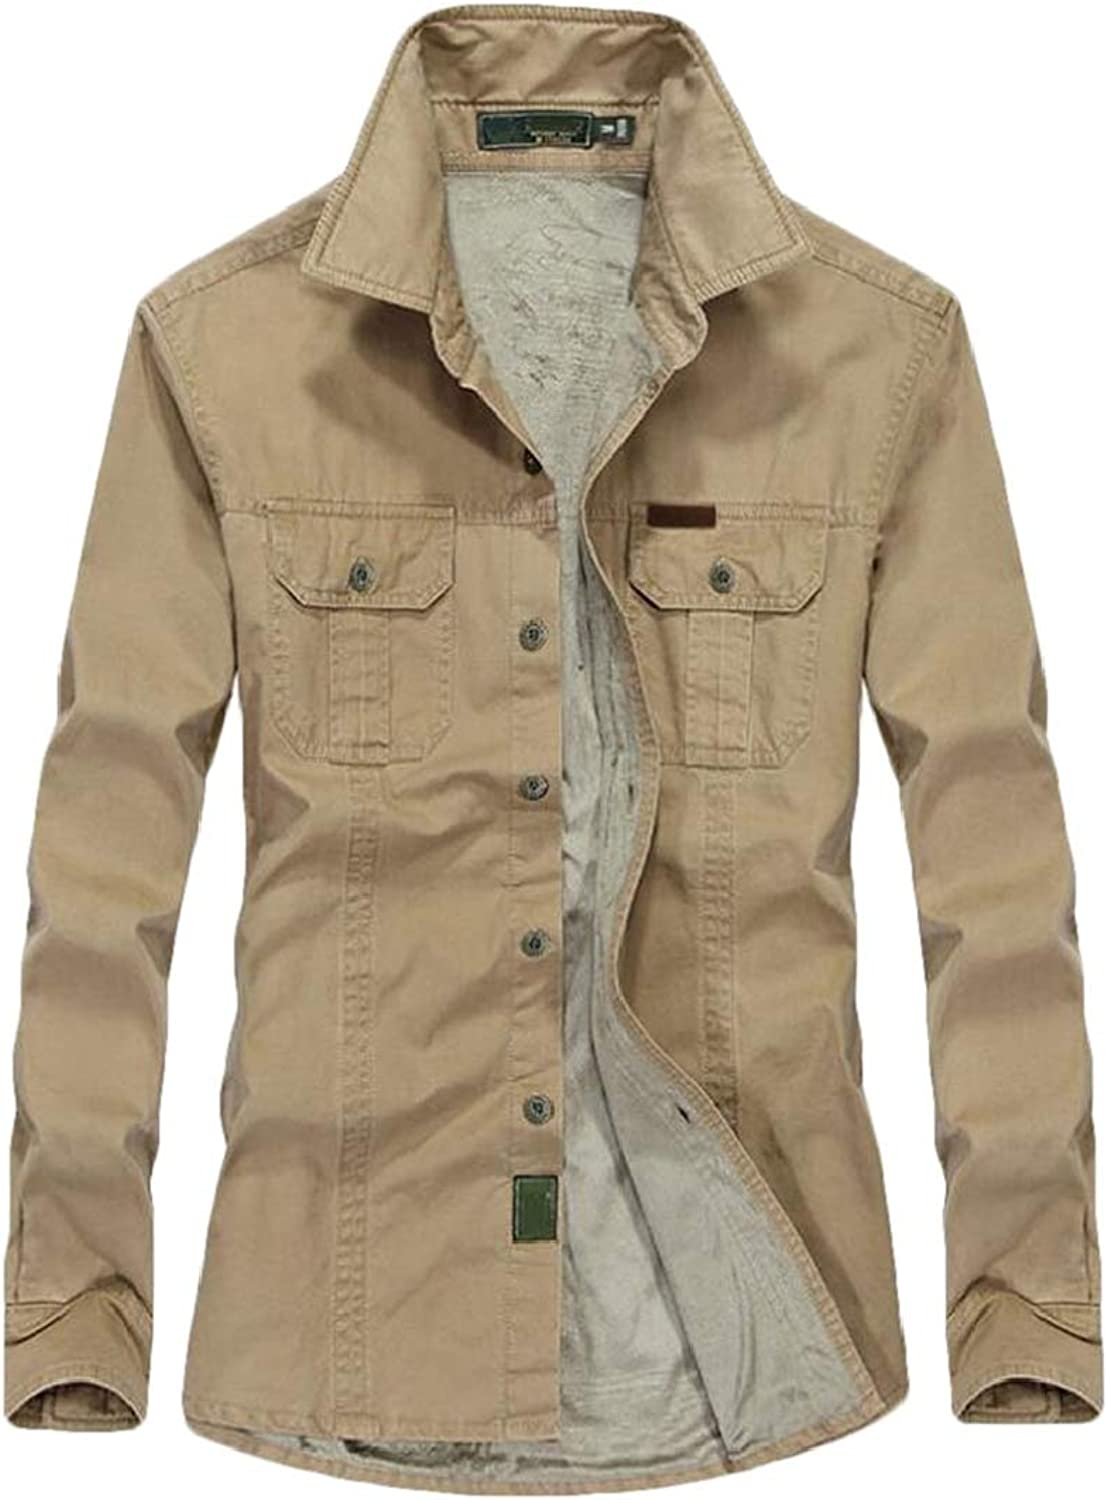 MK988 Mens Linen Fleece Pockets Buttons Military Warm Dress Shirts